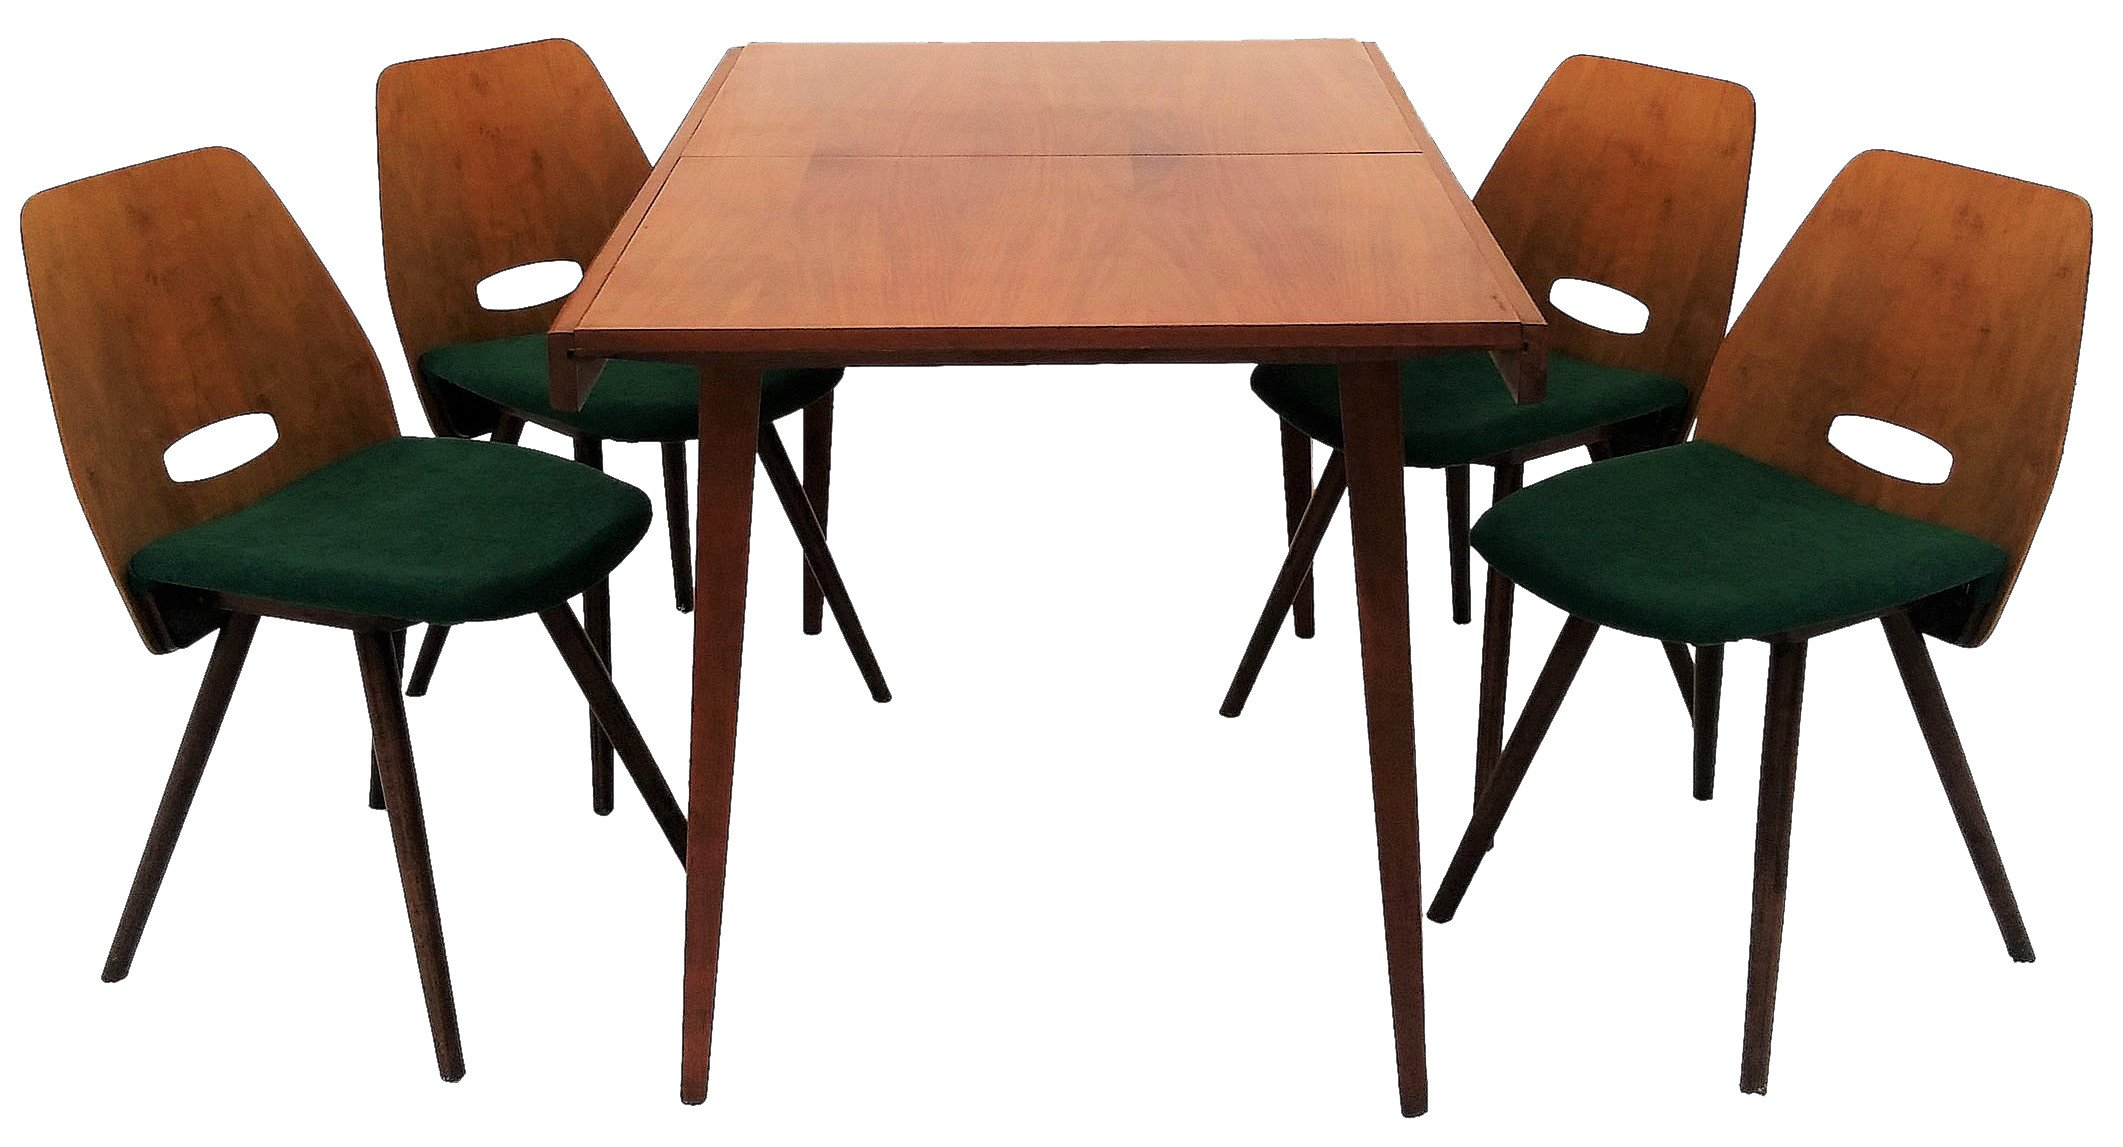 Set of Four Chairs and Table, Tatra Nabytok, Czechoslovakia, 1960s